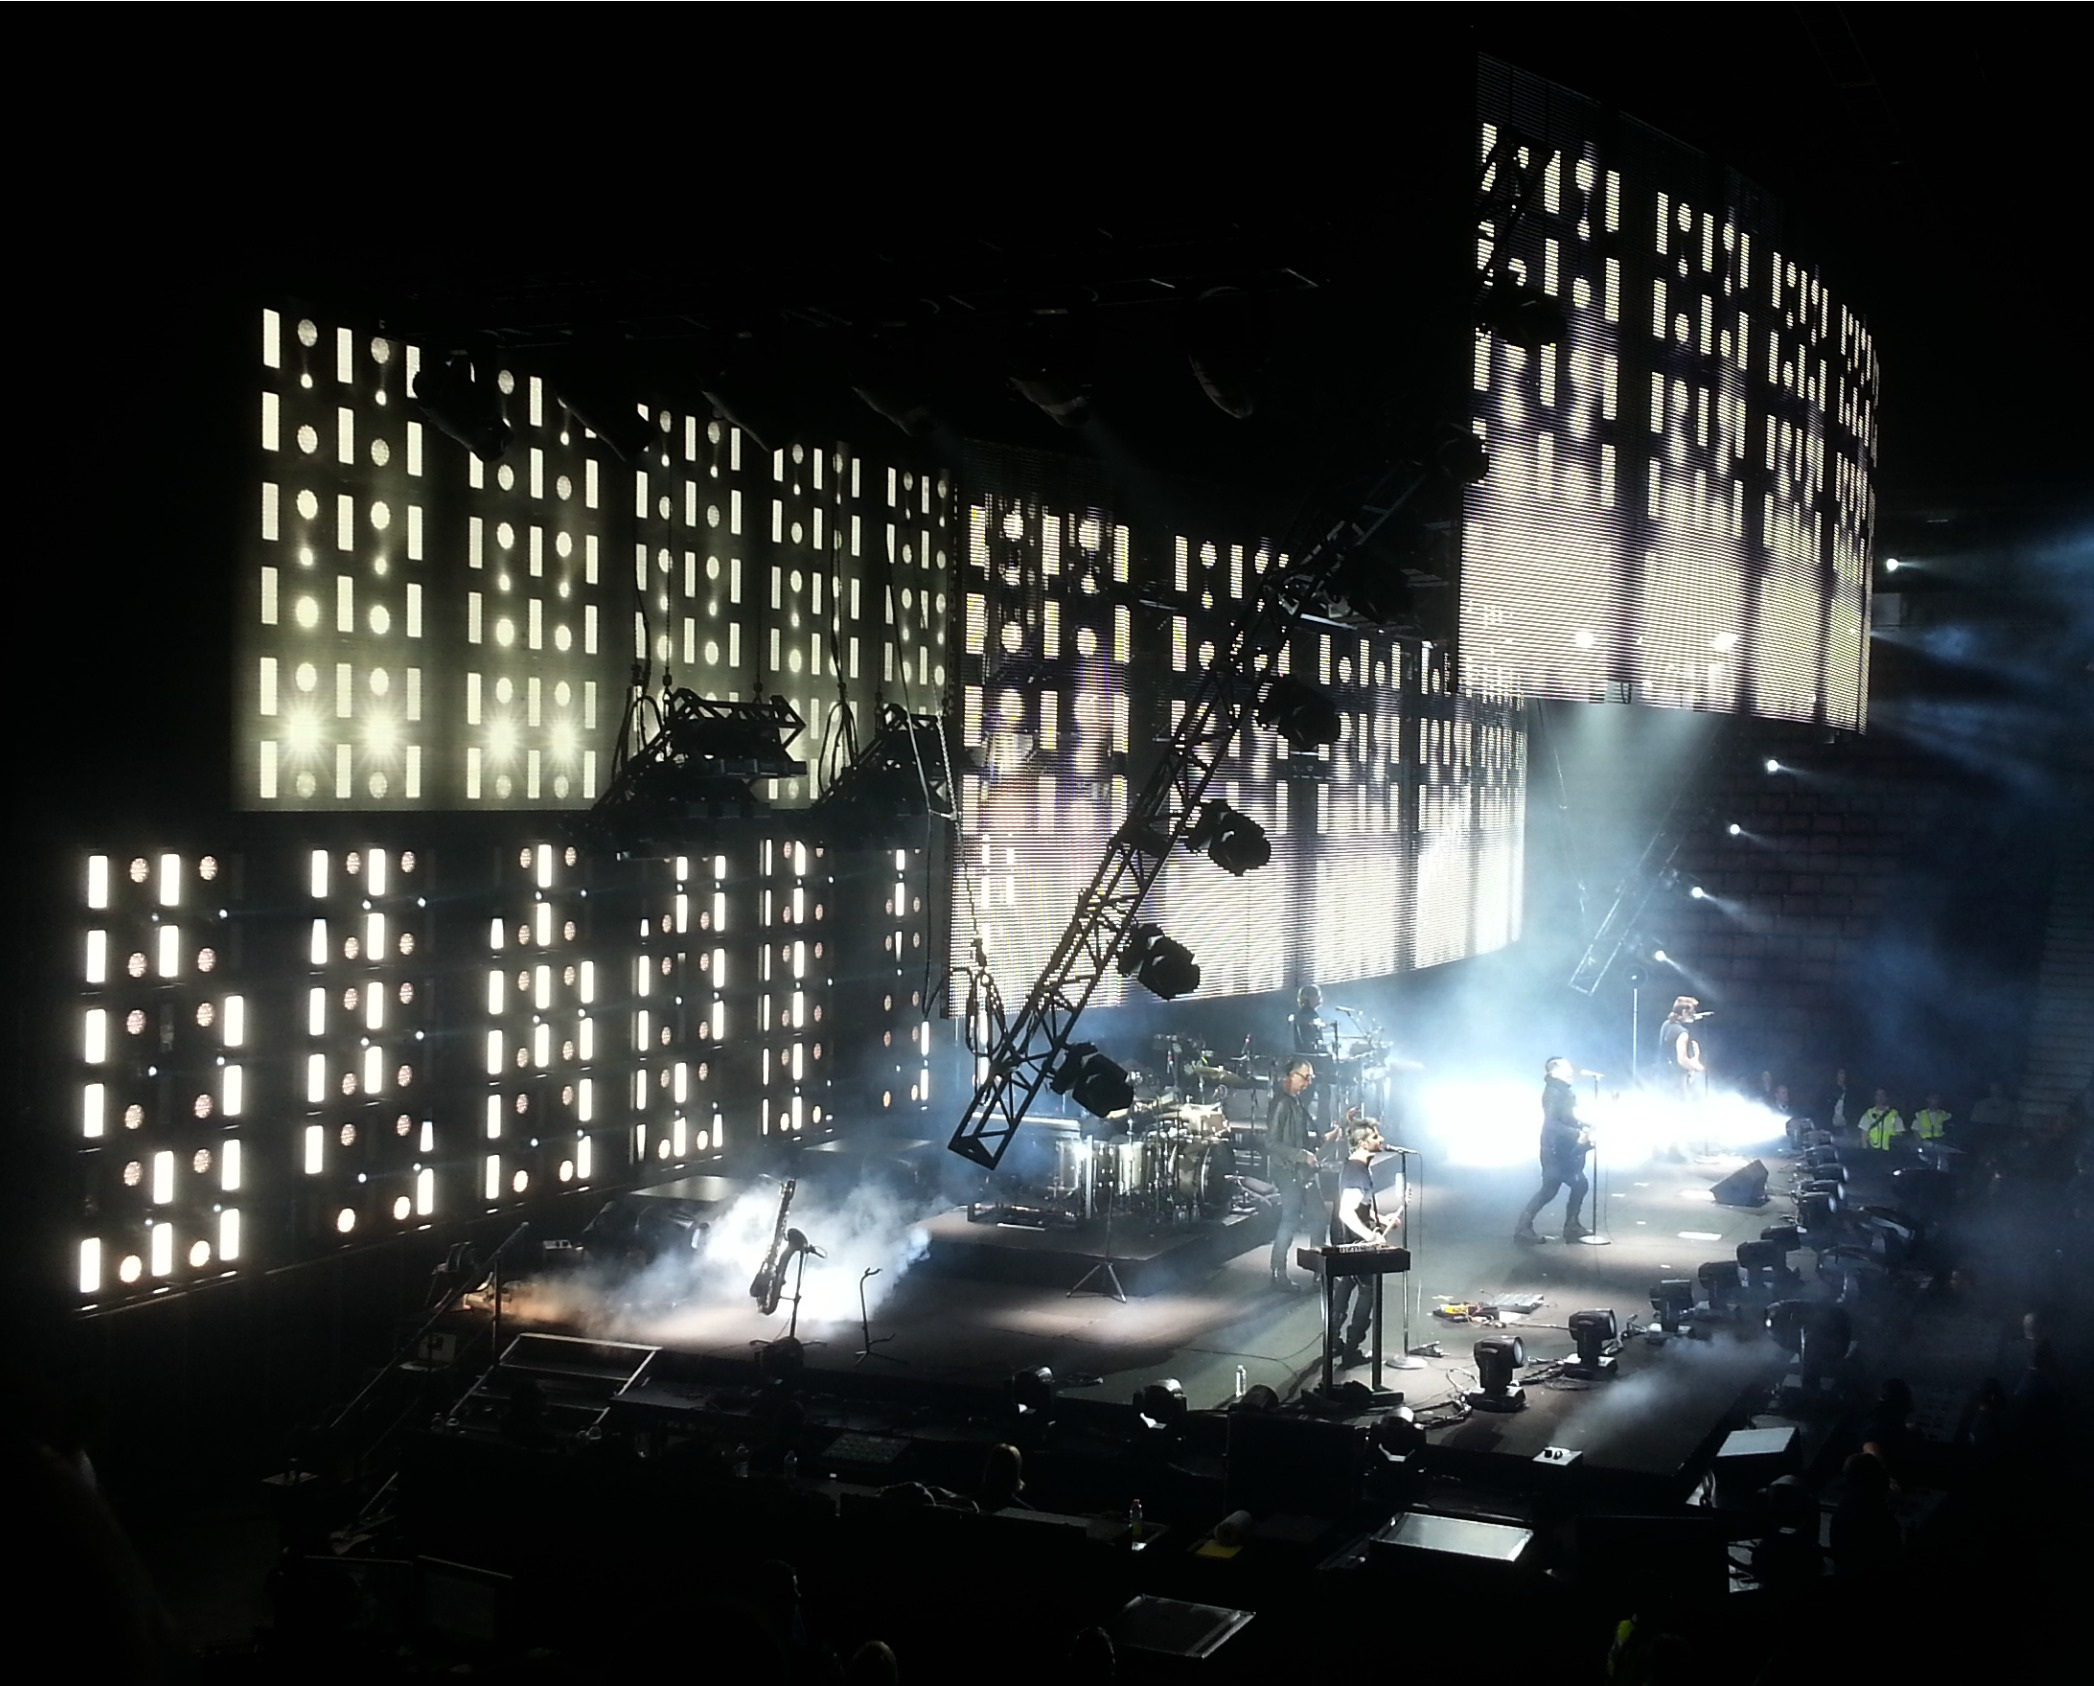 140 on Nine Inch Nails, live at Rogers Arena | Beyond the News